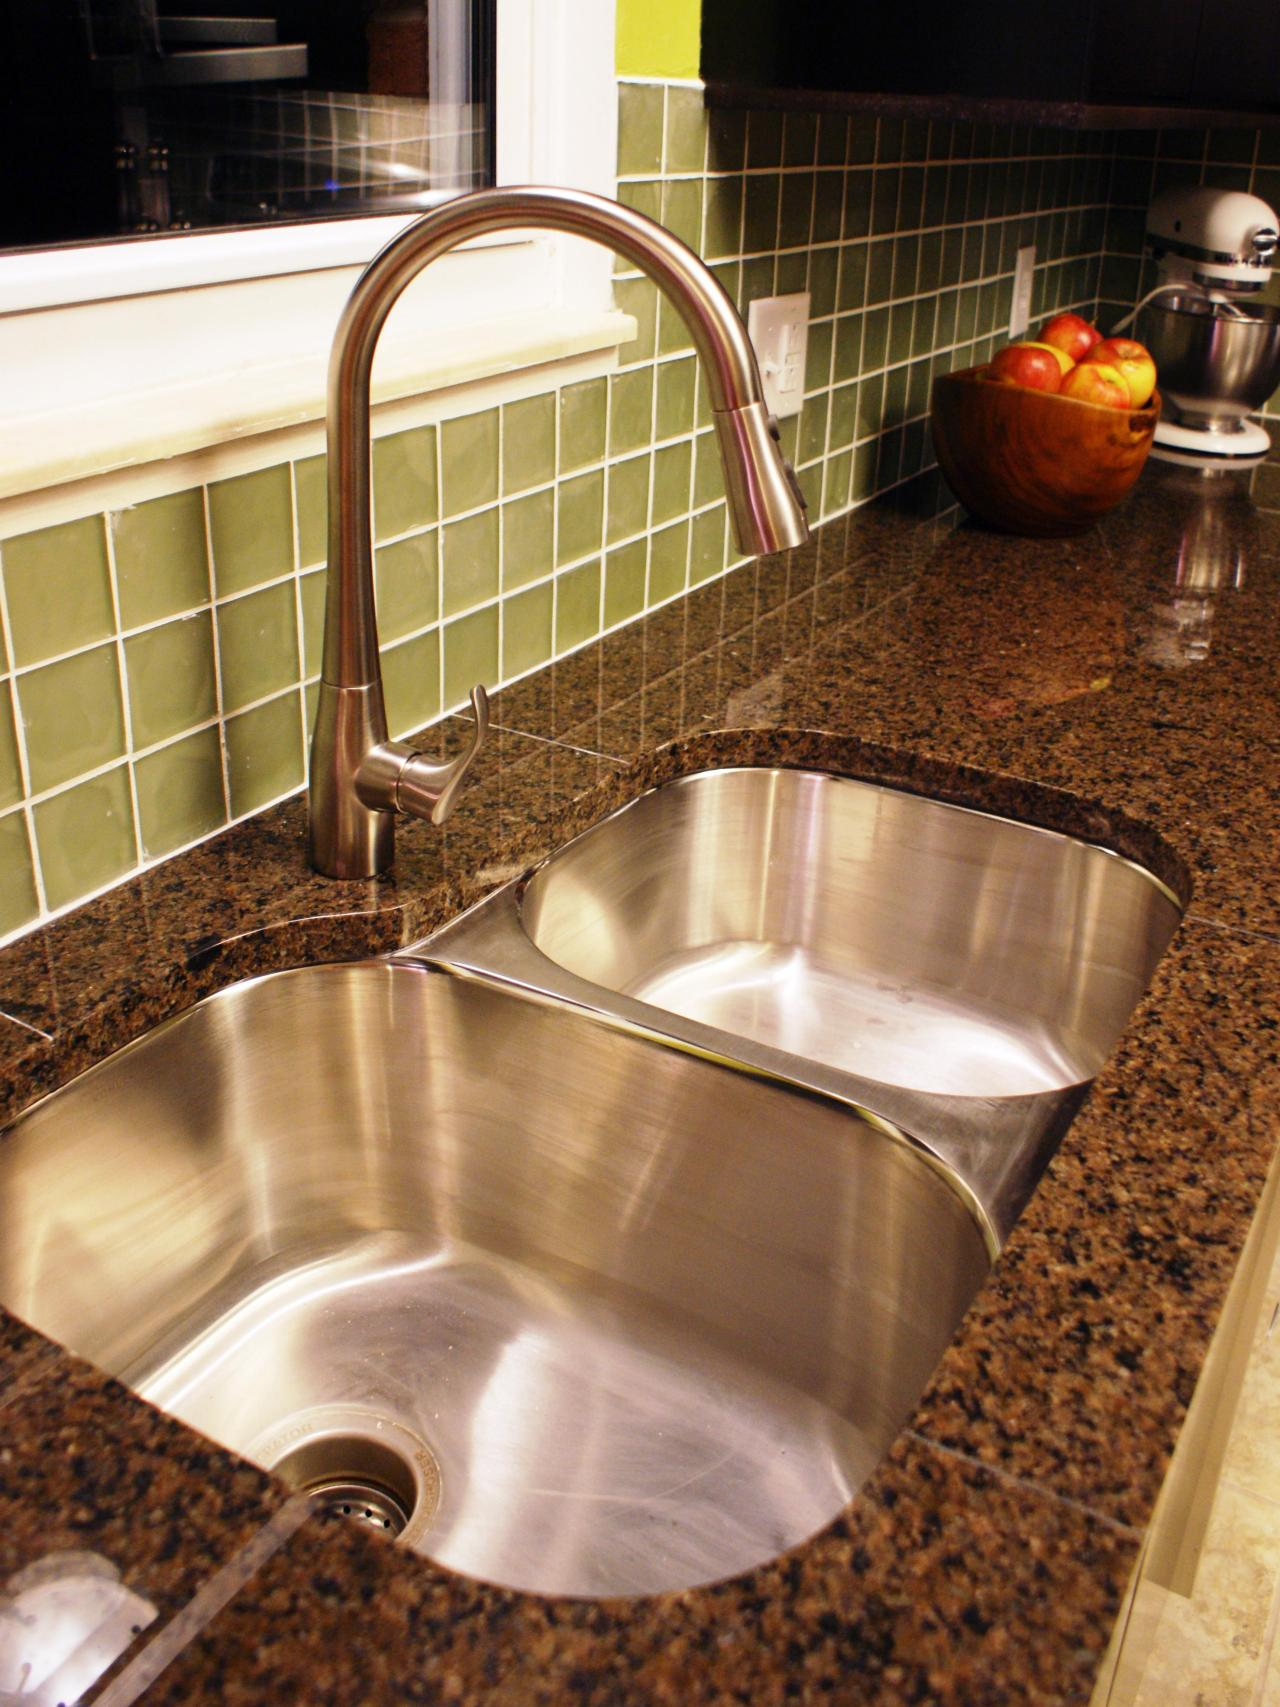 Kitchen sinks for granite countertops for 3 4 inch granite countertops